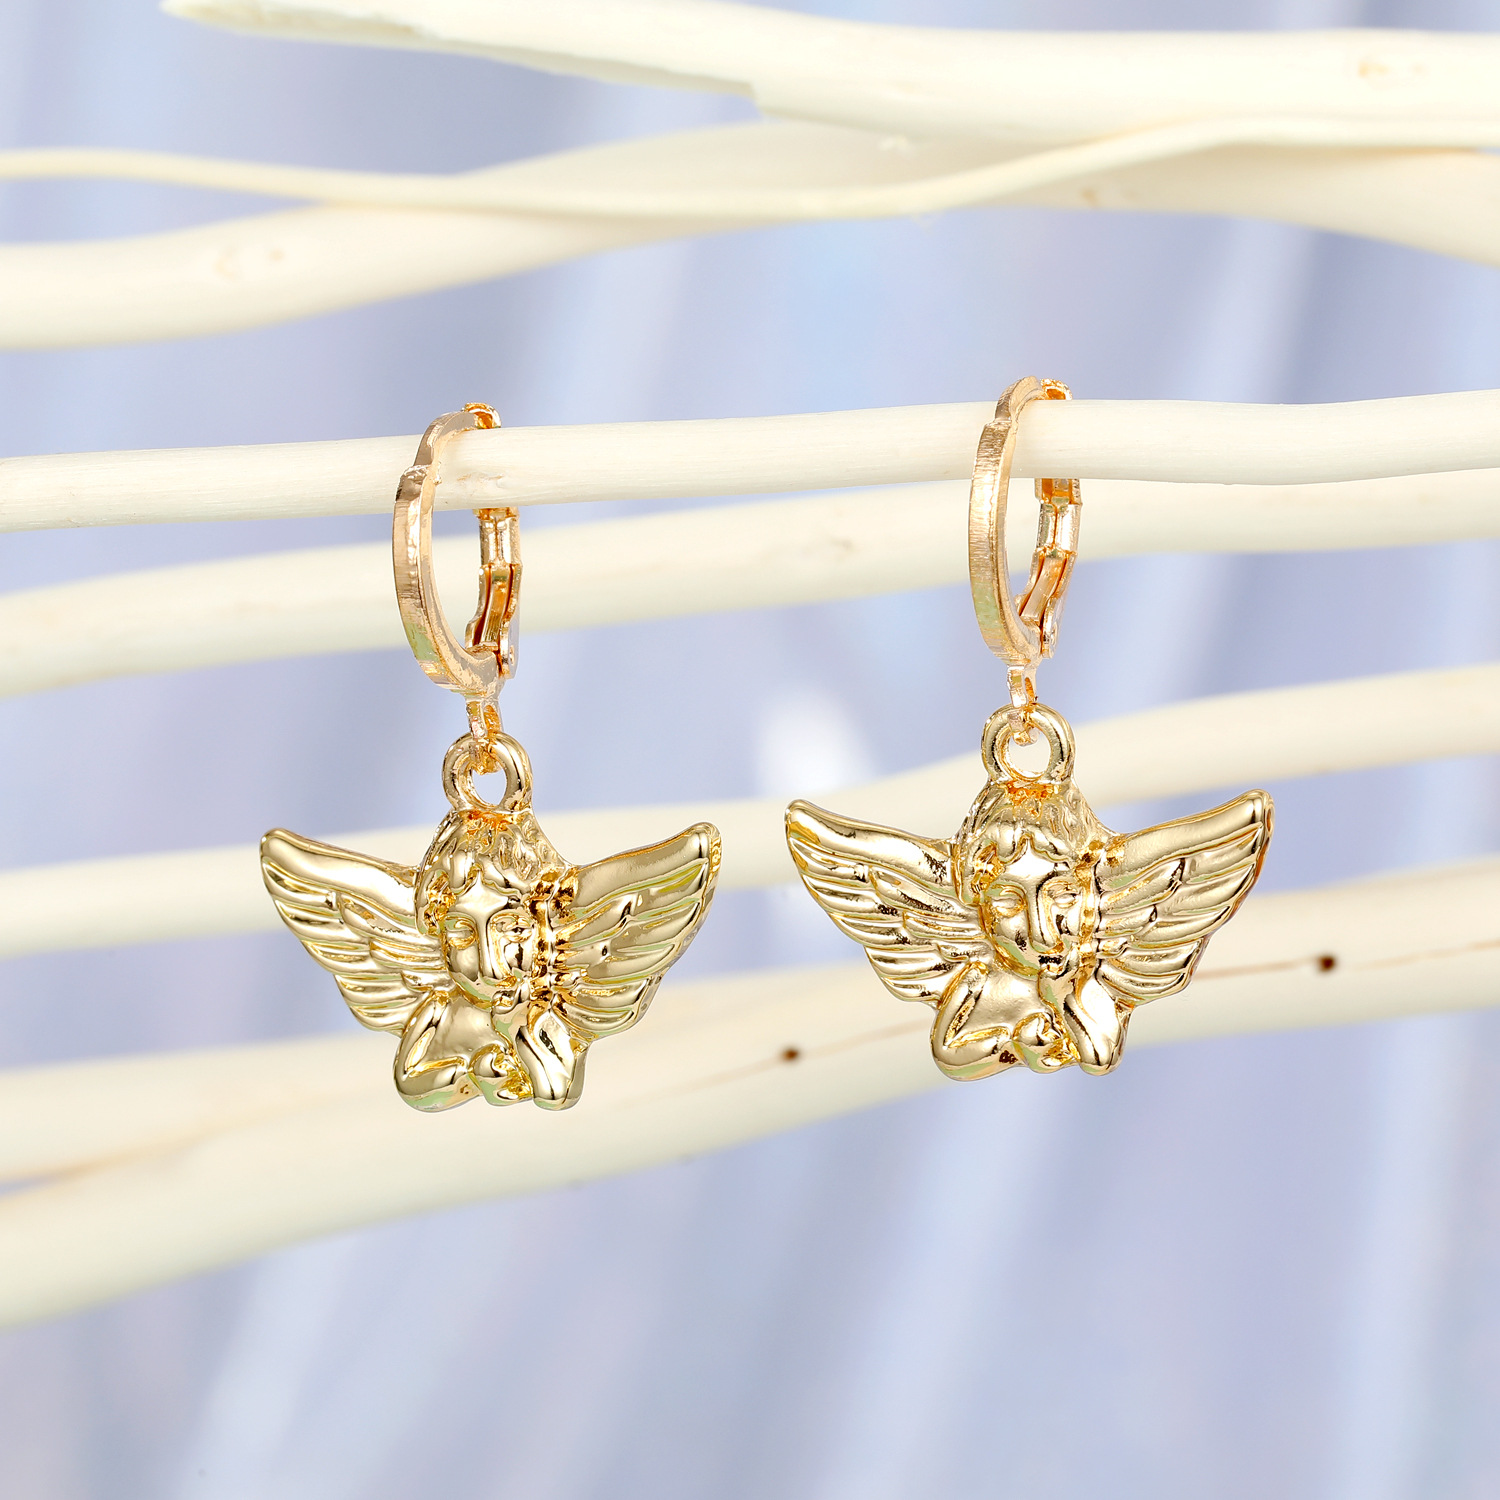 fashion jewelry Cupid earrings alloy angel earrings small hoop earrings wholesale NHGO217508